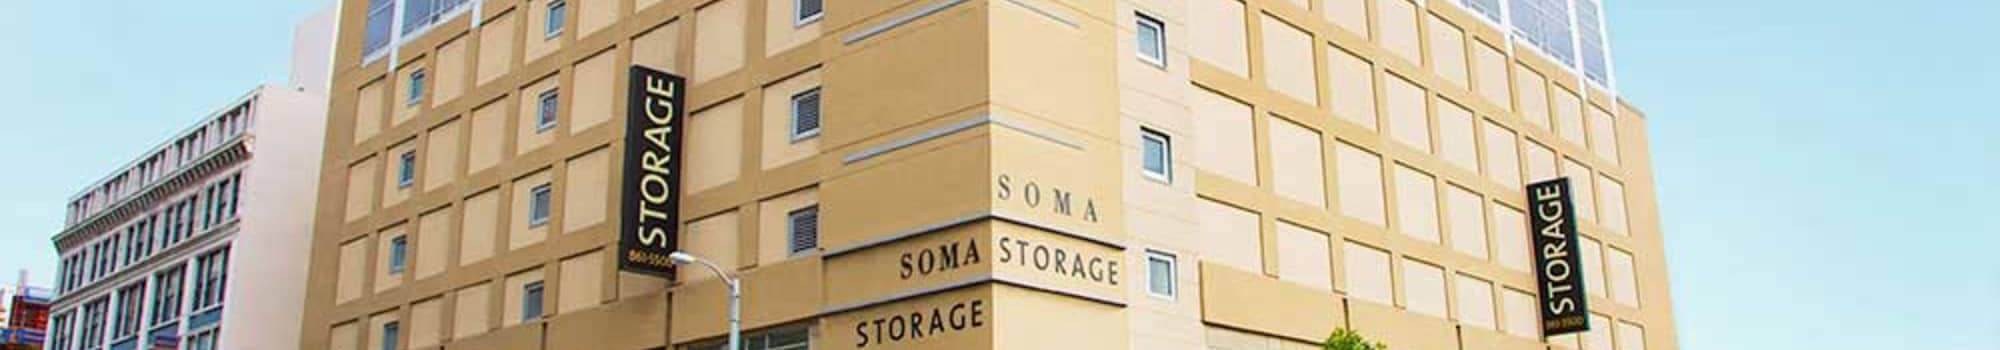 Refer a friend to SOMA Self-Storage in San Francisco, California